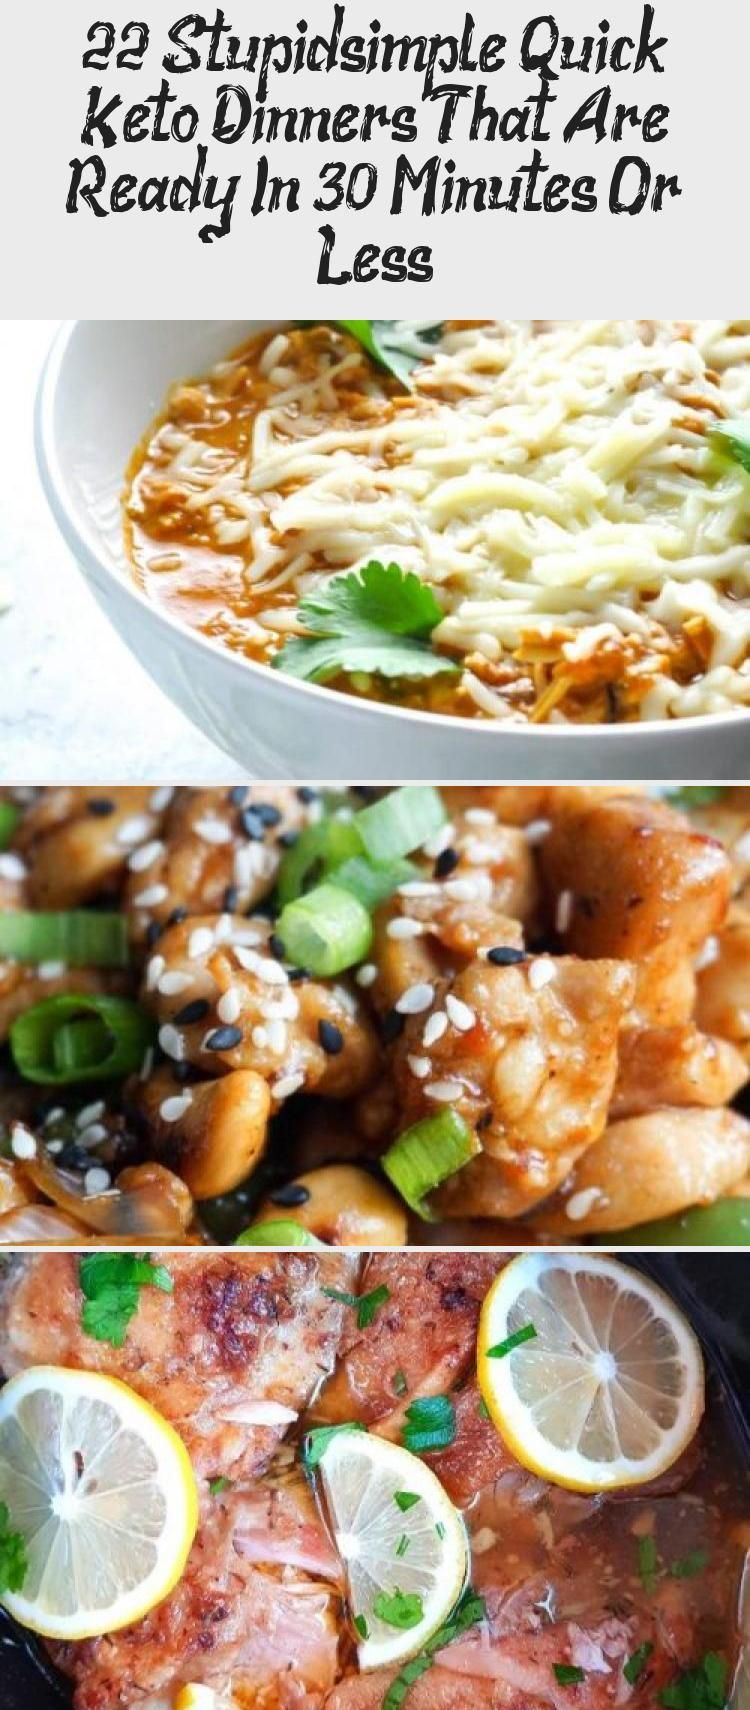 22 Stupid-simple Quick Keto Dinners That Are Ready In 30 Minutes Or Less 22 Keto & Low Carb Dinner Recipes That Are Ready In 30 Minutes or Less! These easy keto dinner recipes contain chicken, beef, shrimp, and pork. Make them in a casserole, instant pot or crock pot. Quick keto dinners your whole family will love!